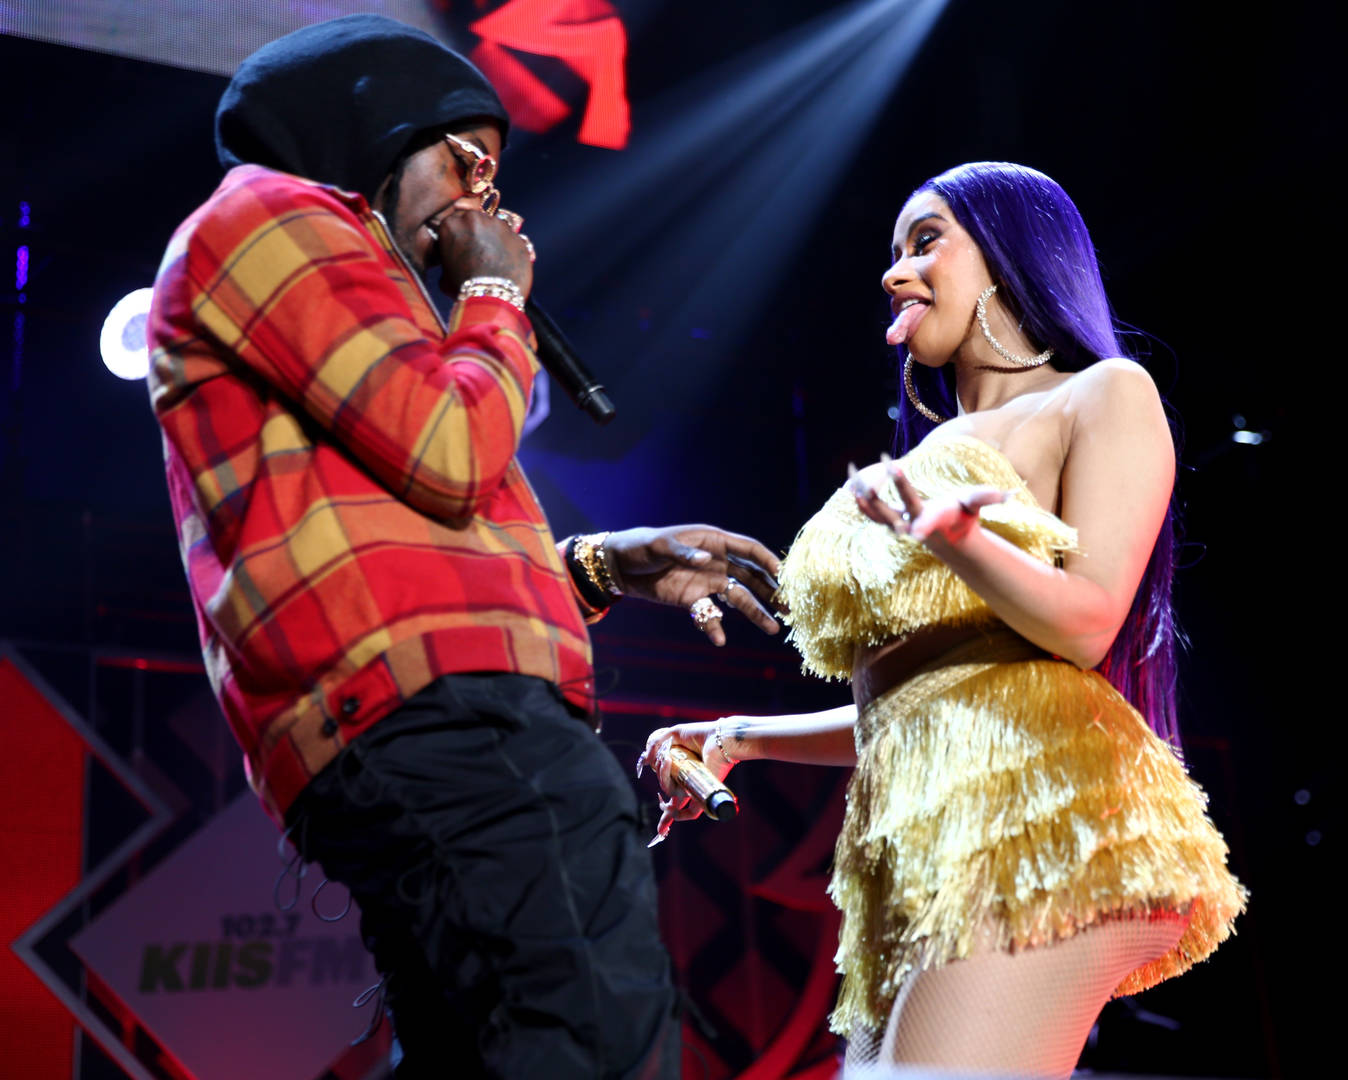 Cardi B Denies Report that She's Back Together with Offset